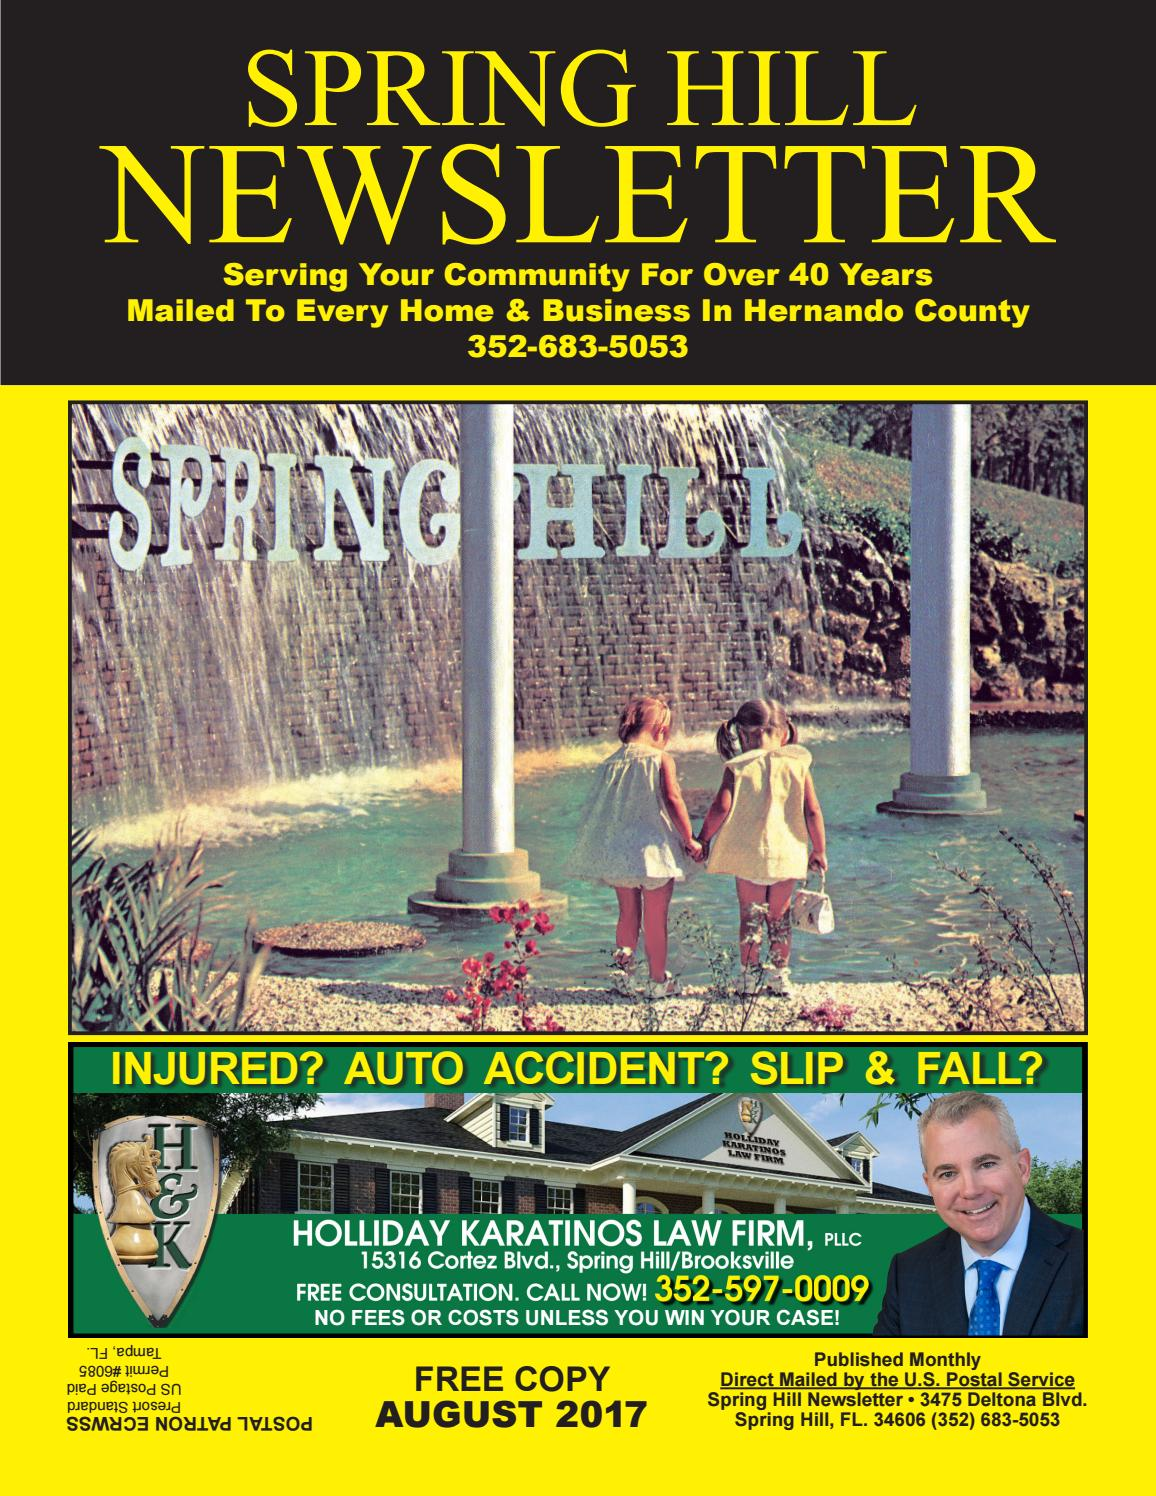 August 2017 Waterfall Newsletter By Spring Hill Newsletter